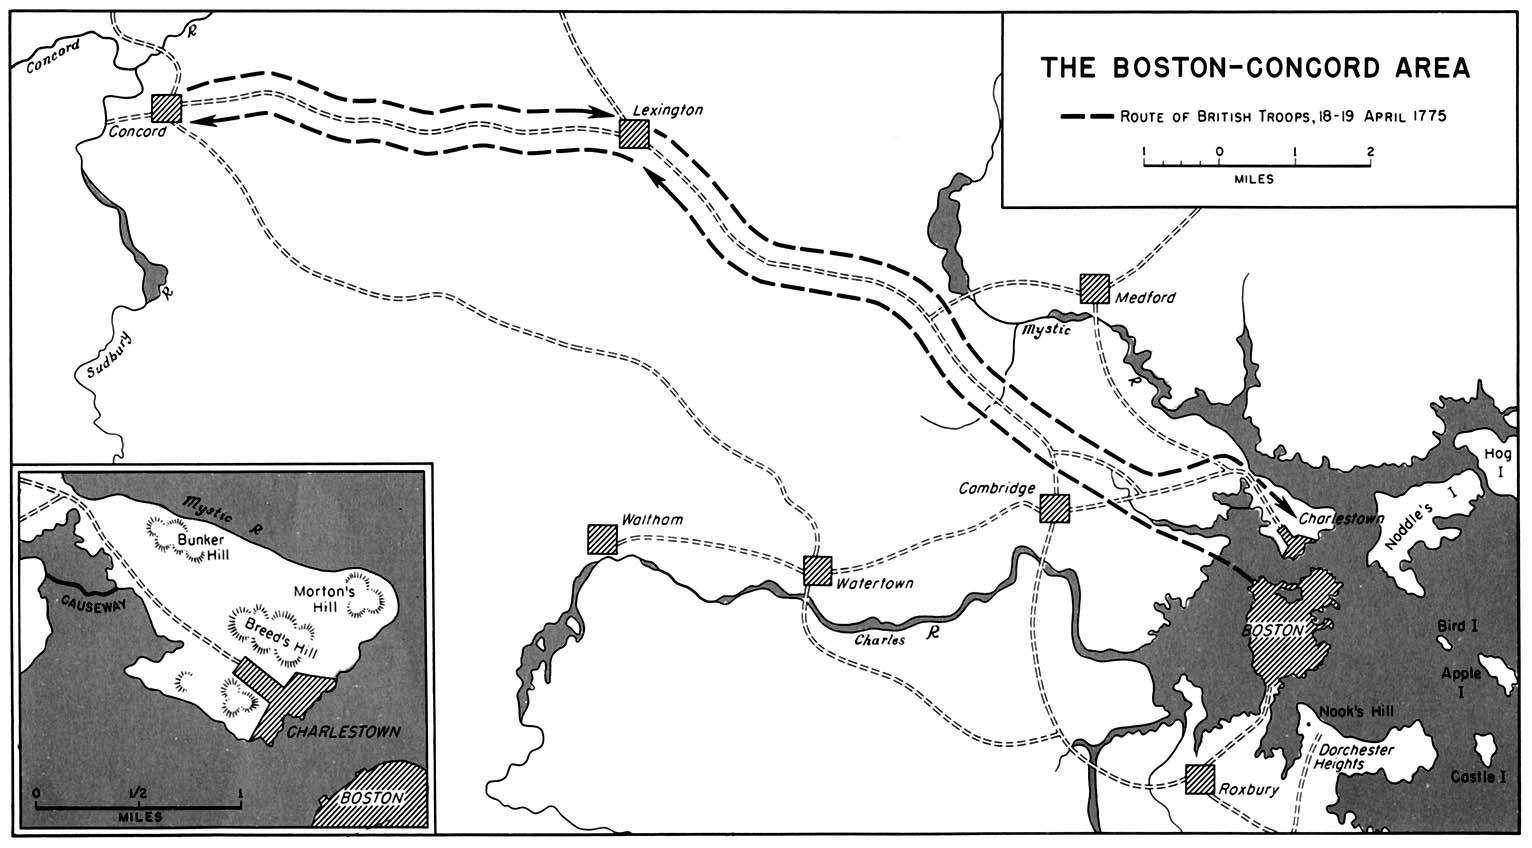 Map of the Boston Concord Area, Route of British Troops April 1775, American Revolutionary War